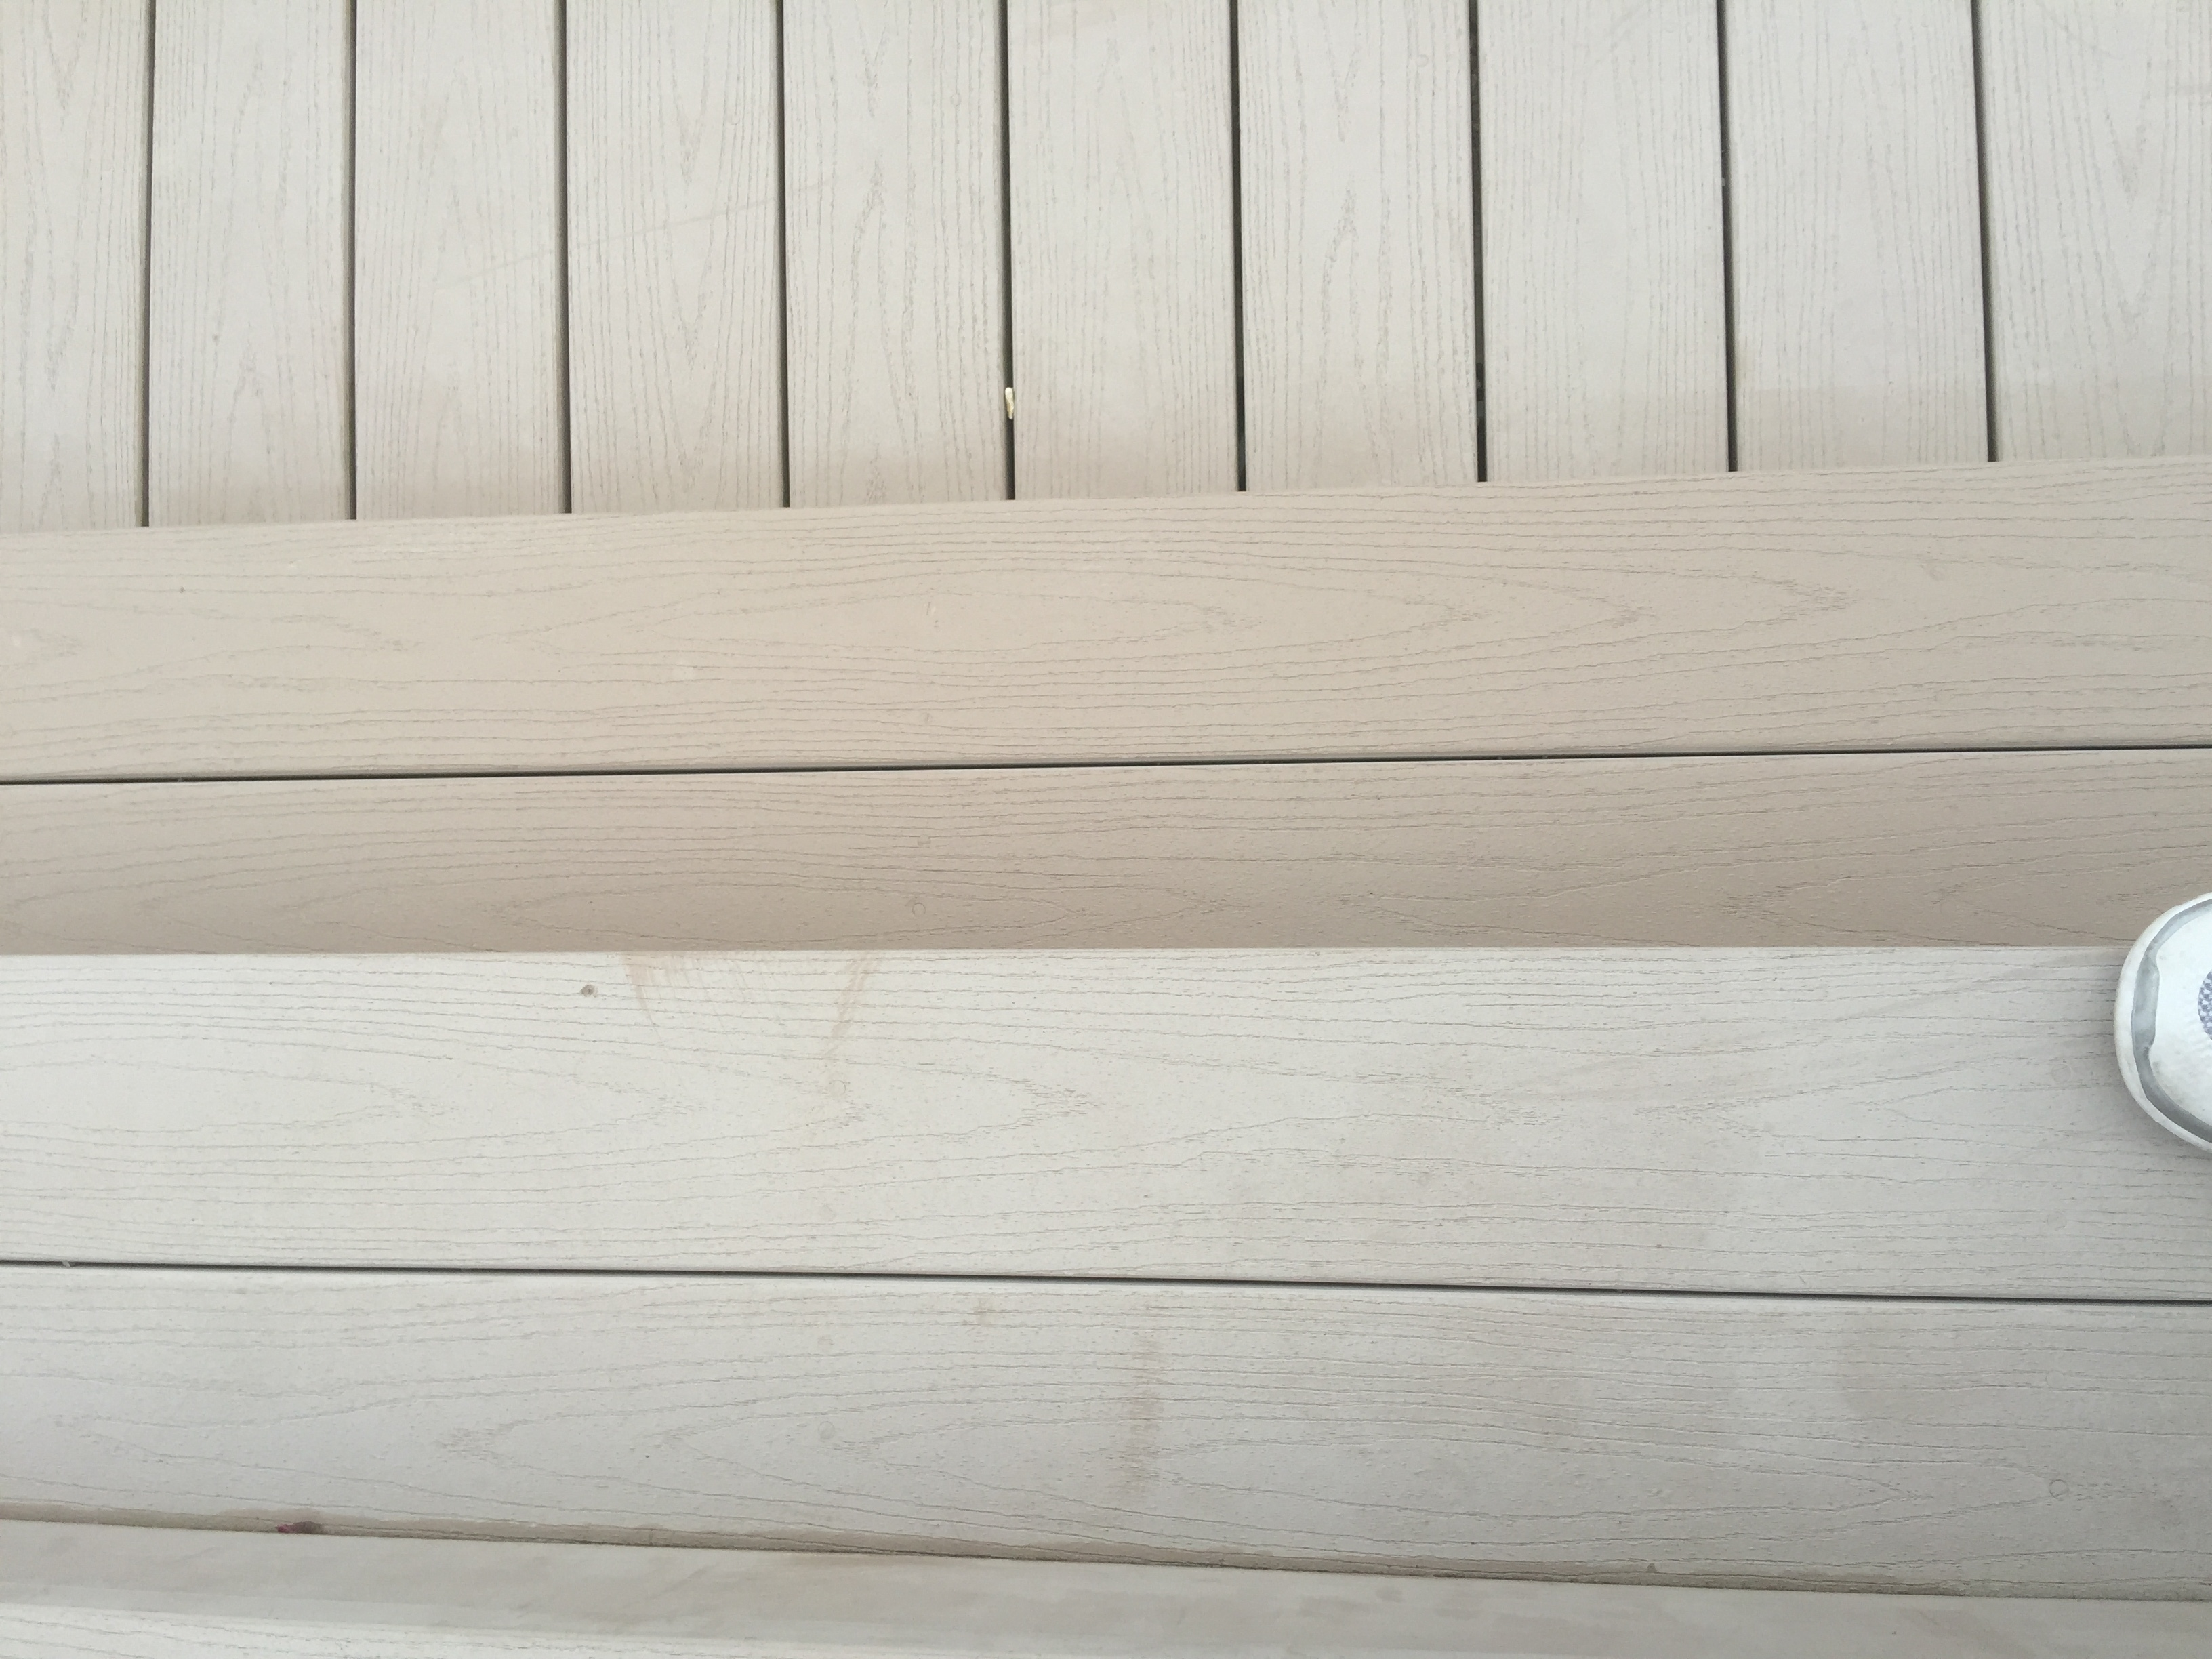 DeckMAX professional deck cleaning solutions before and after